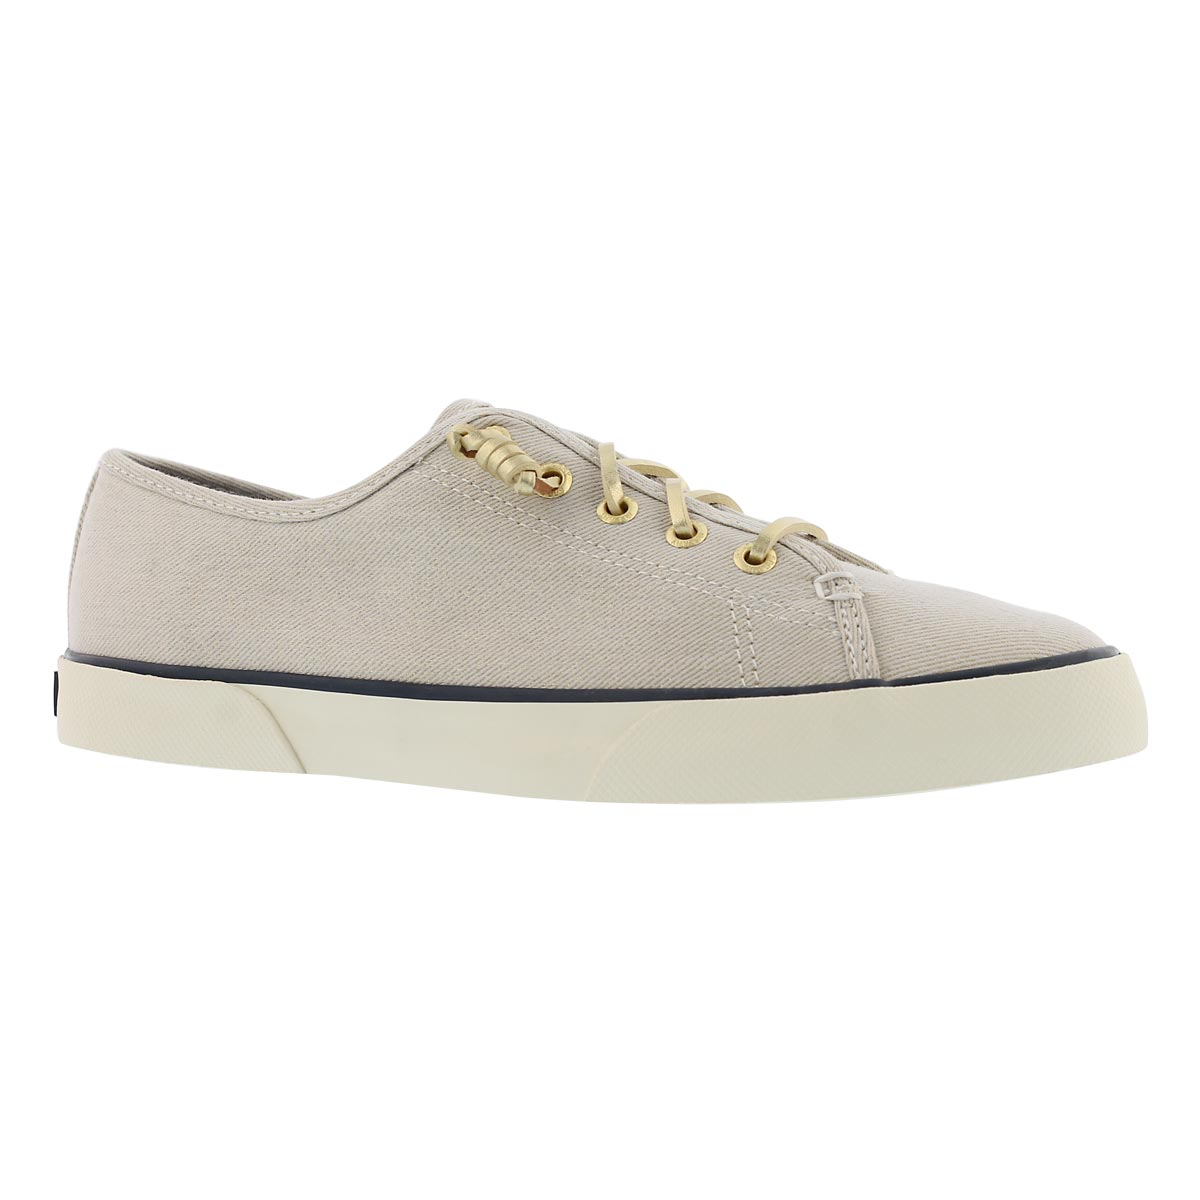 Women's PIER VIEW SPARKLE white/gold sneakers